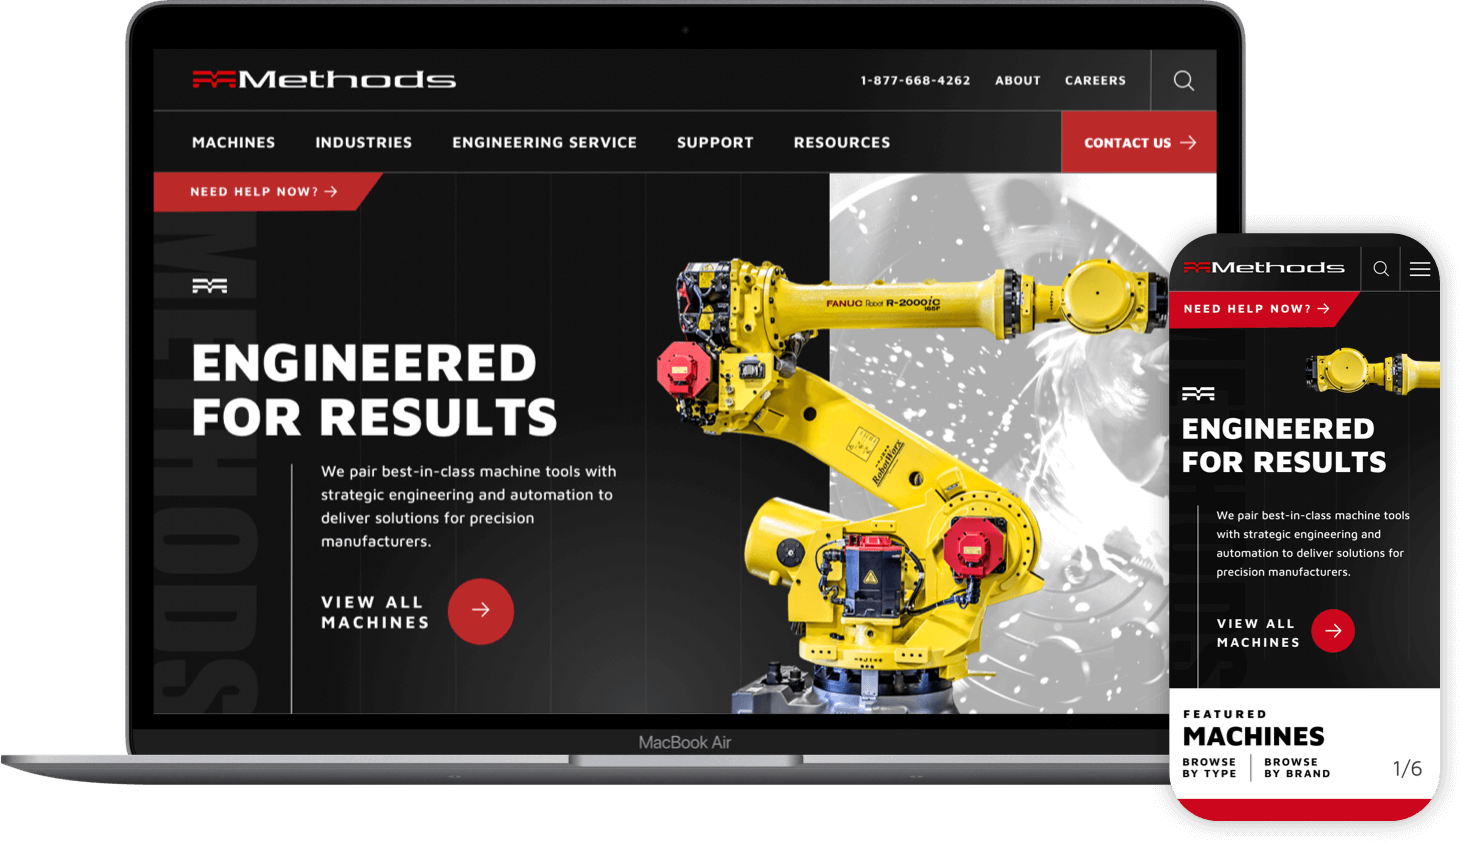 example of the Methods Machine Tools website on a laptop and phone